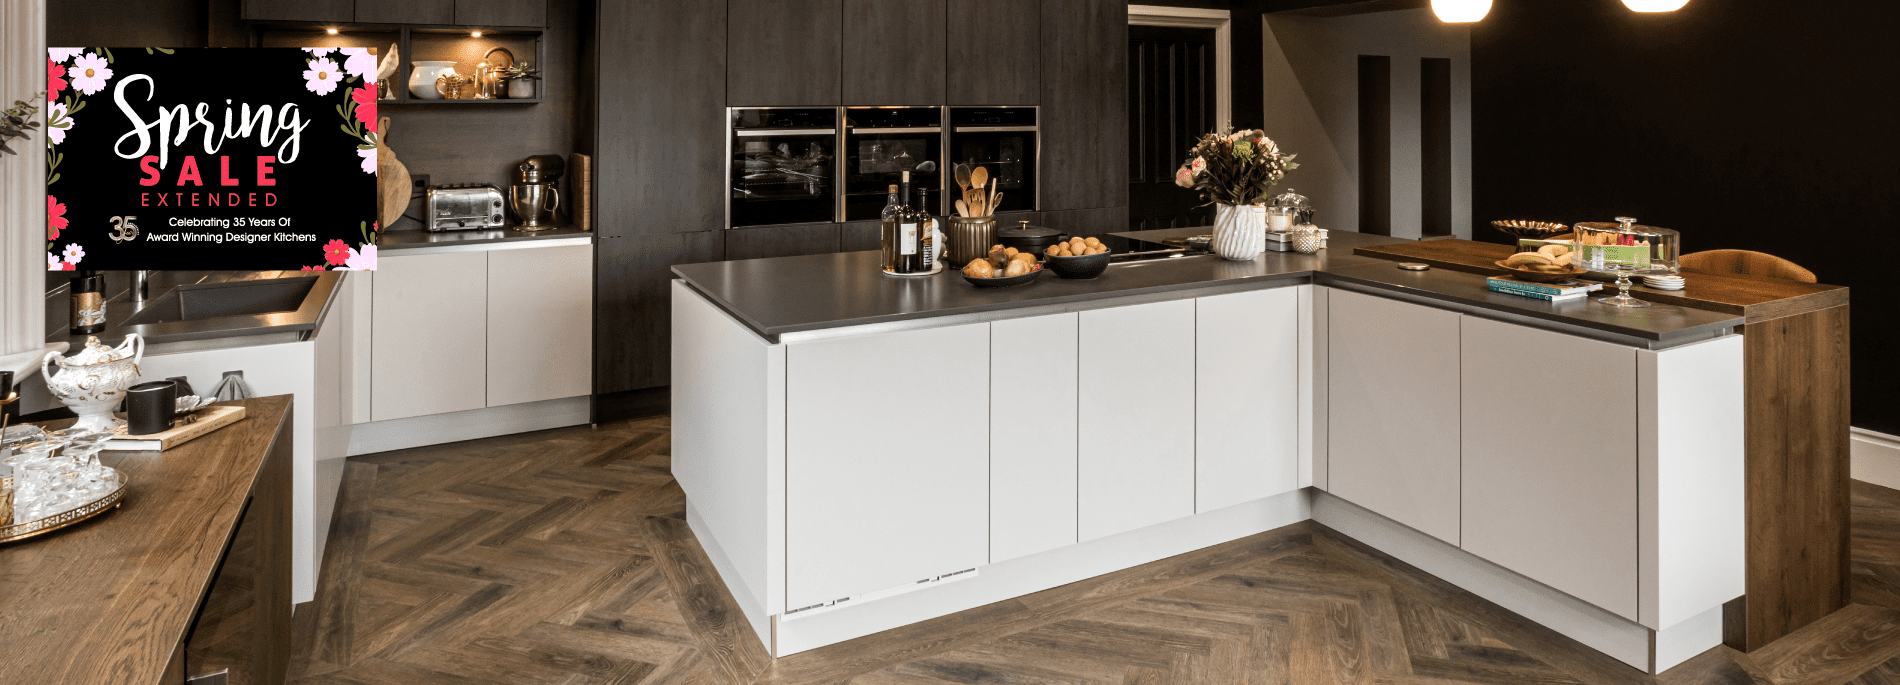 Buy Now Pay Later on your dream kitchen